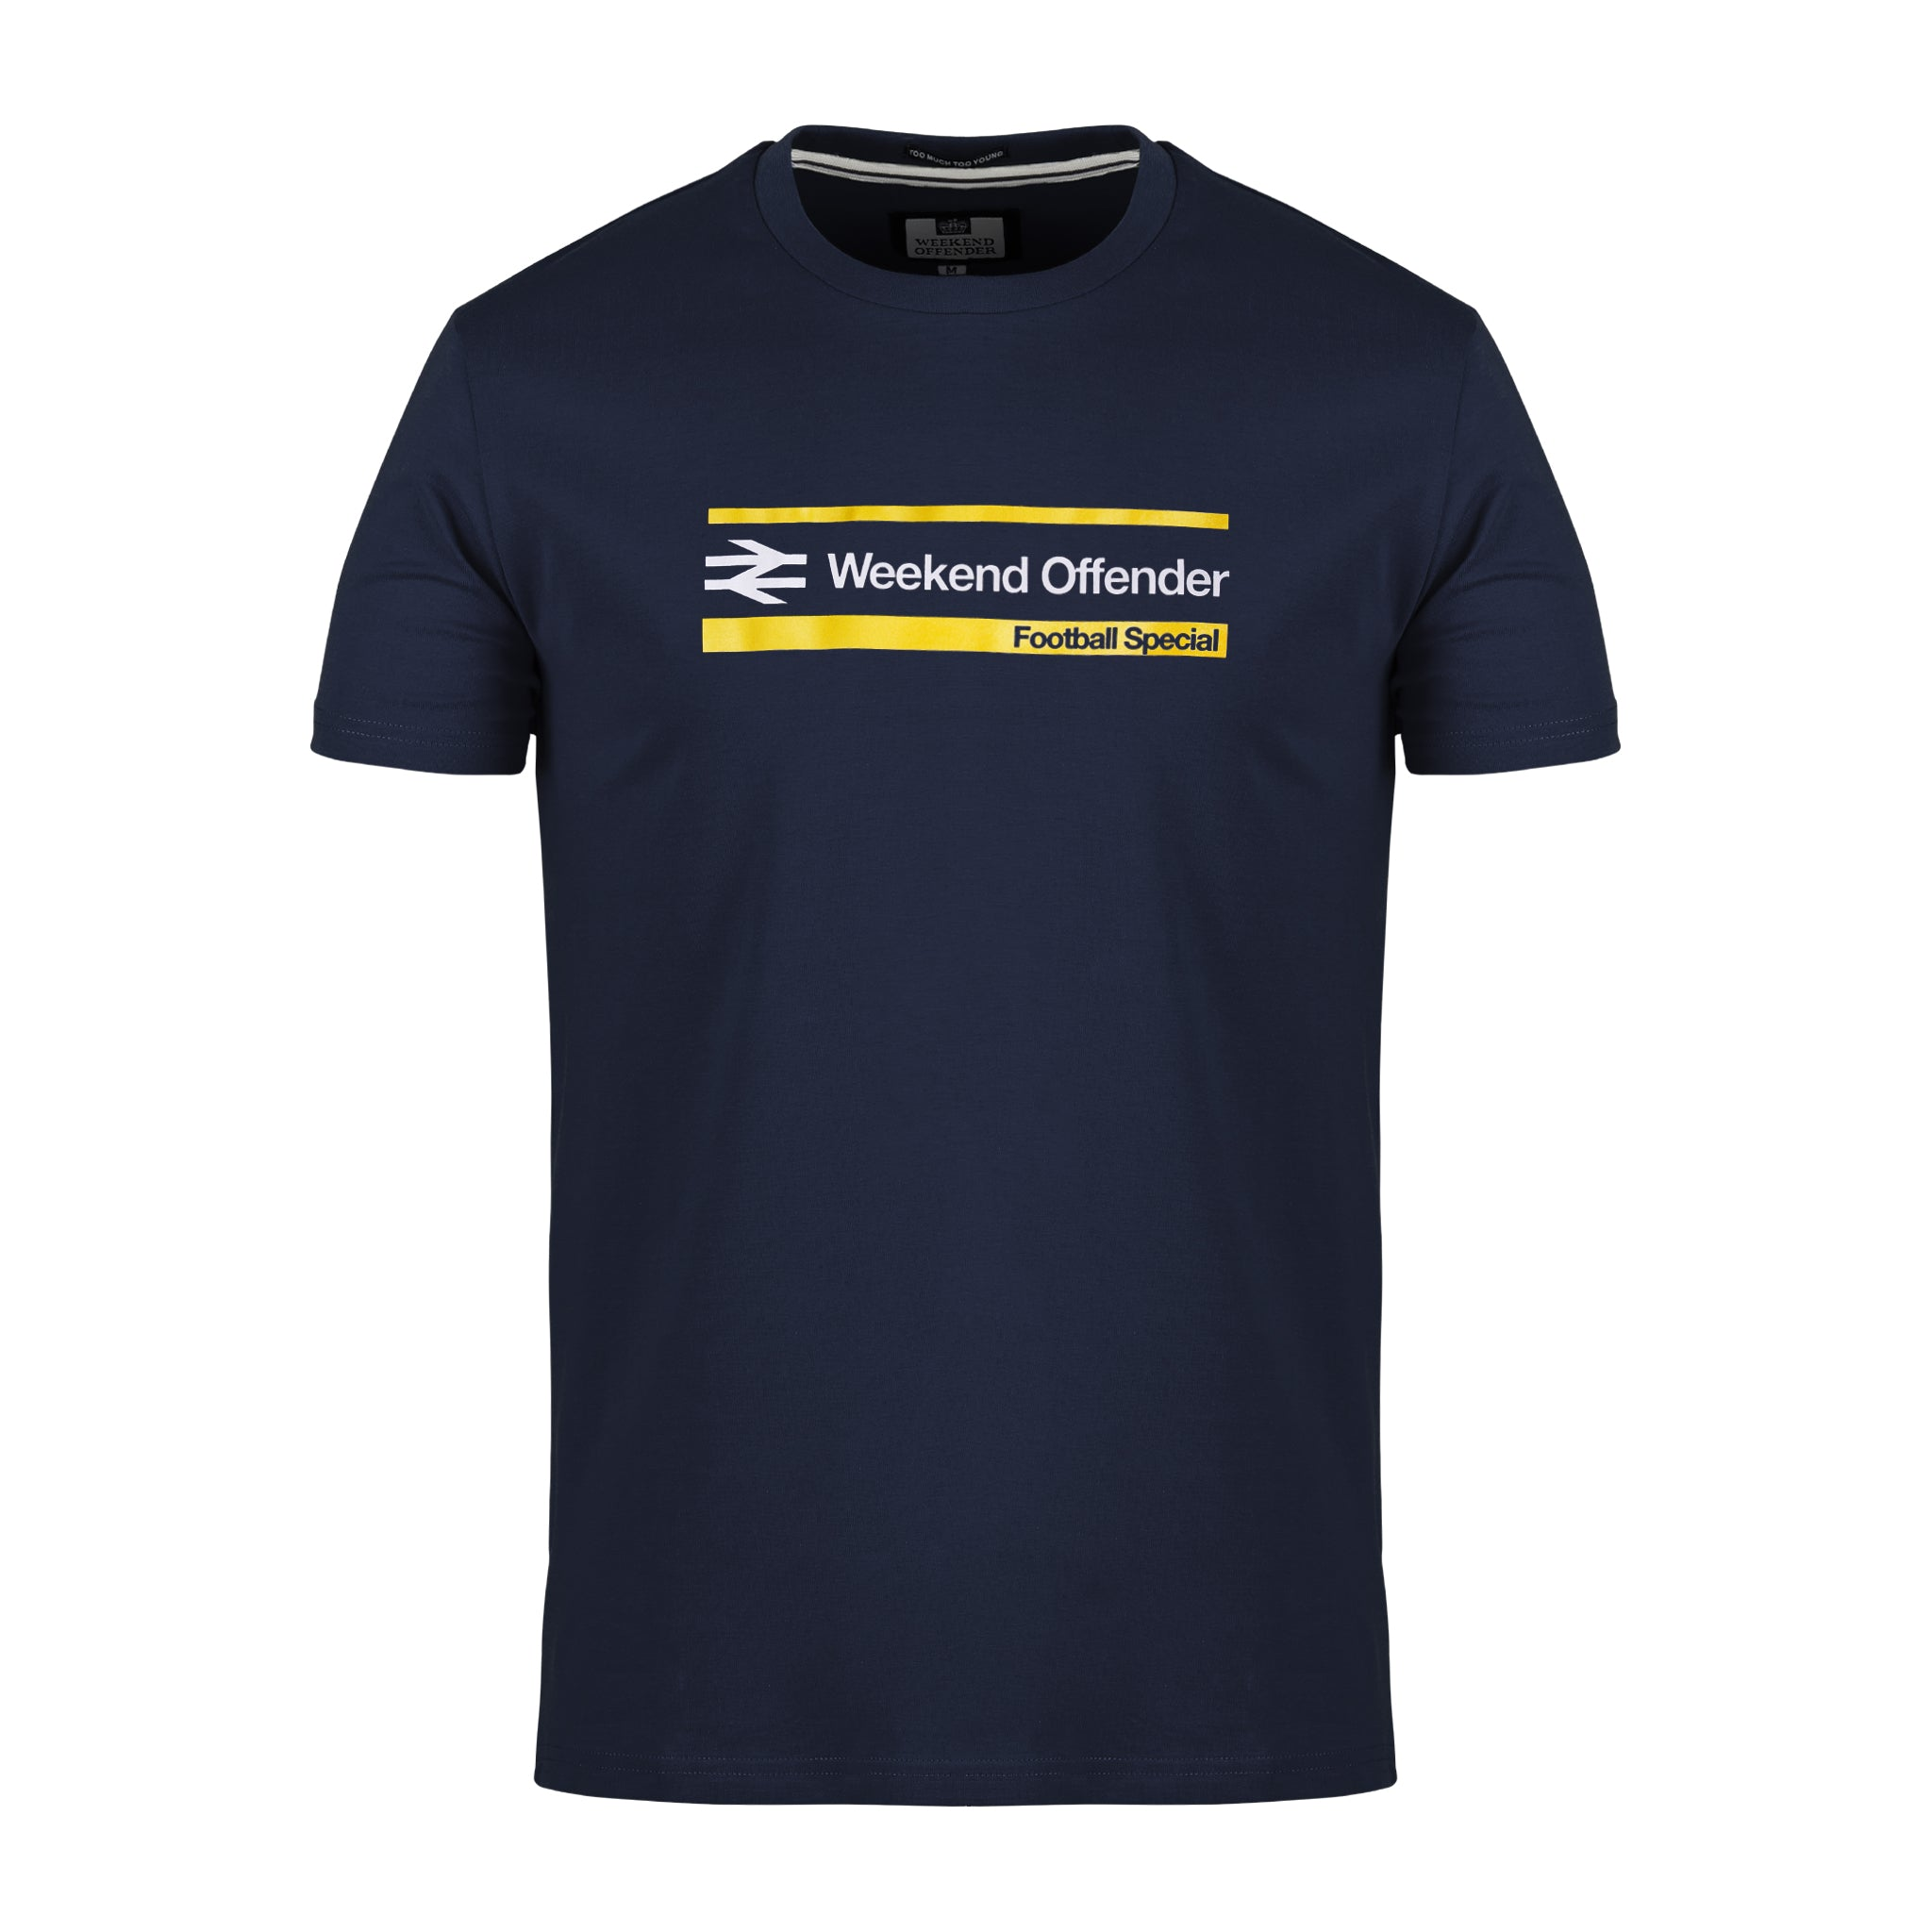 Football Special T-Shirt